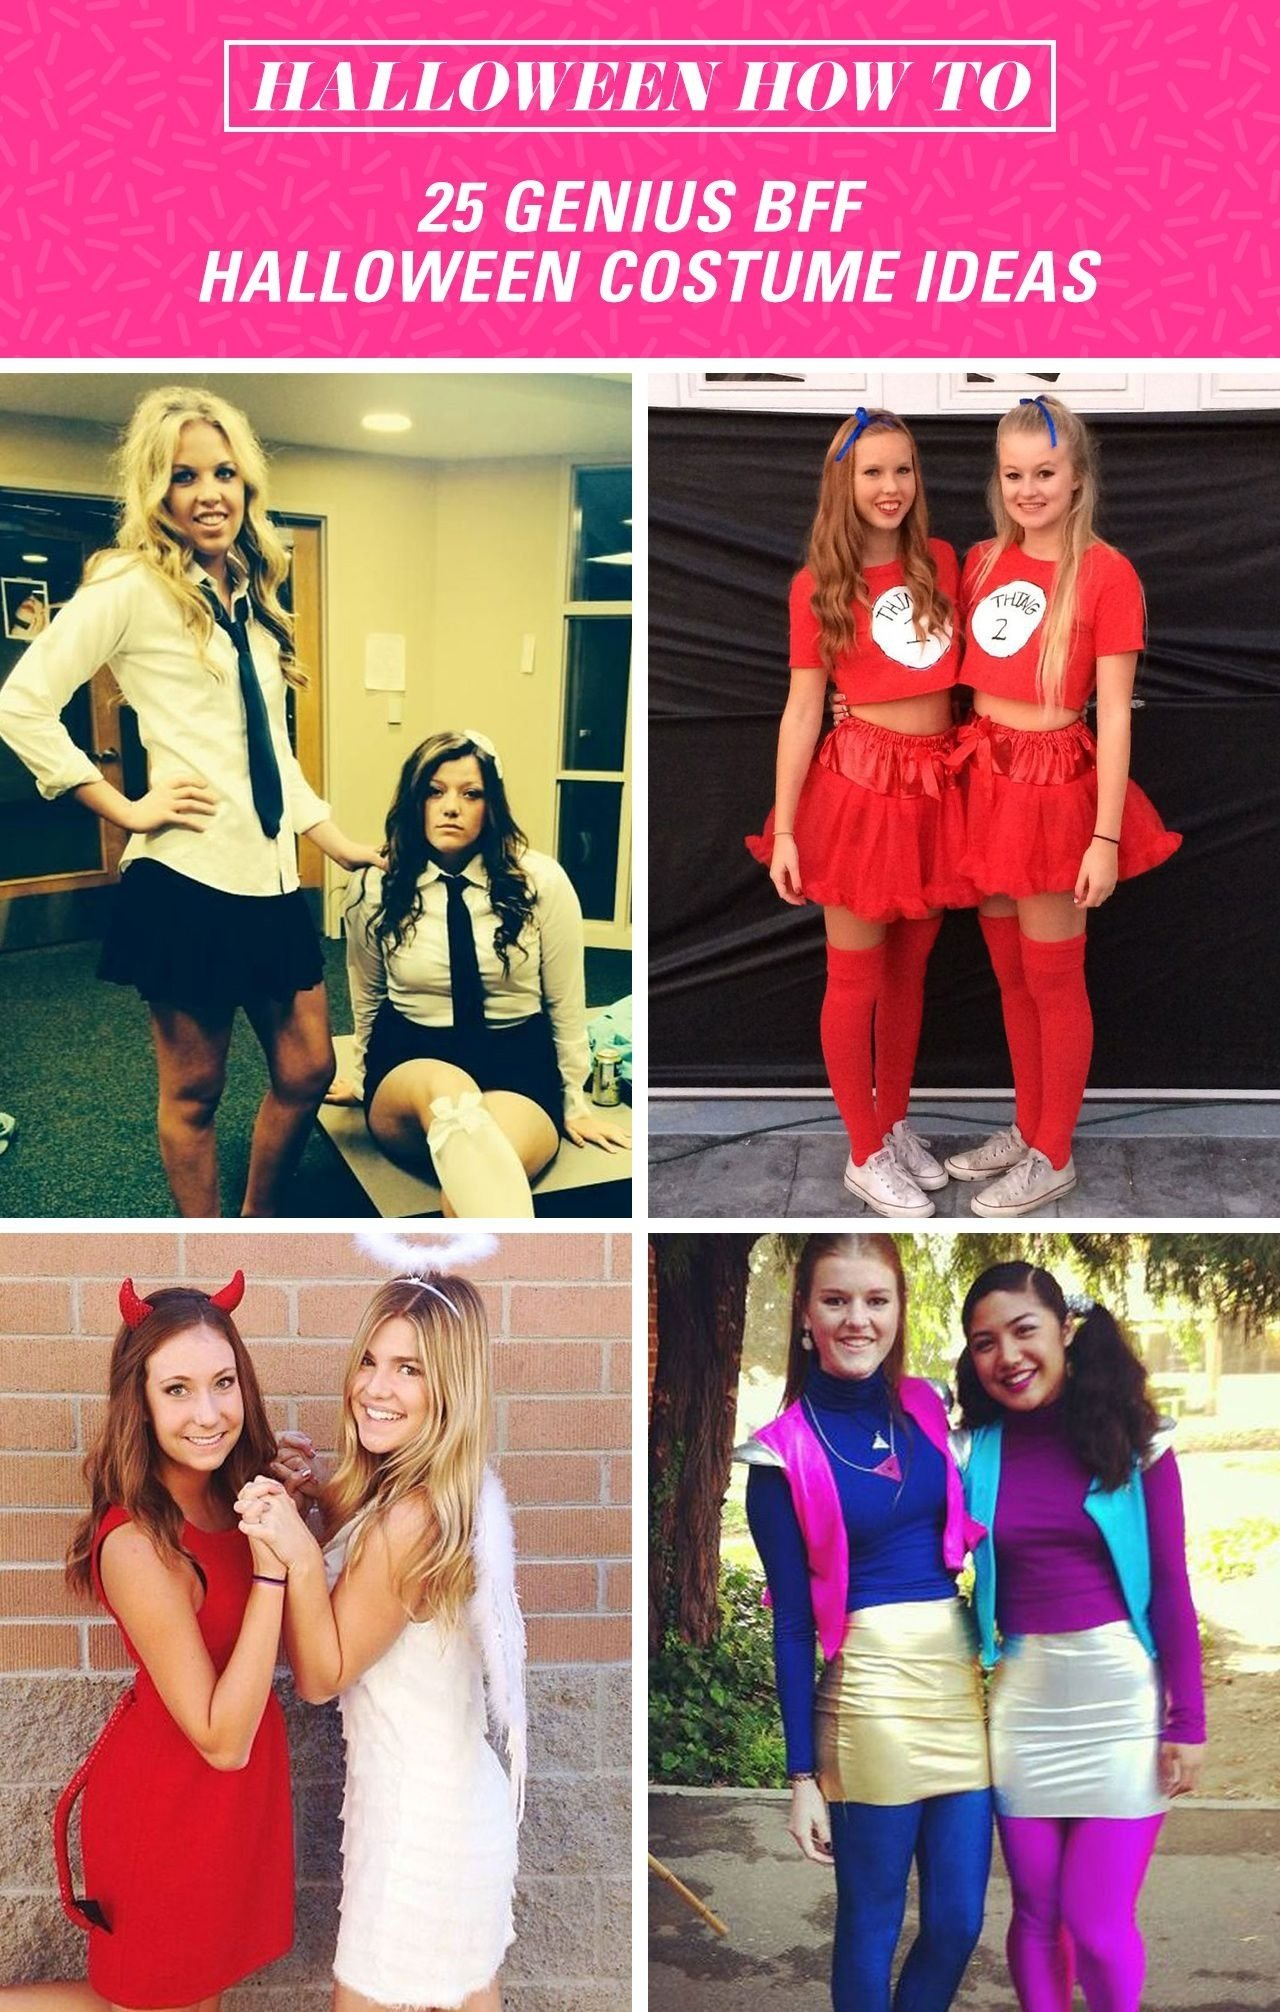 24 genius bff halloween costume ideas you need to try | costumes